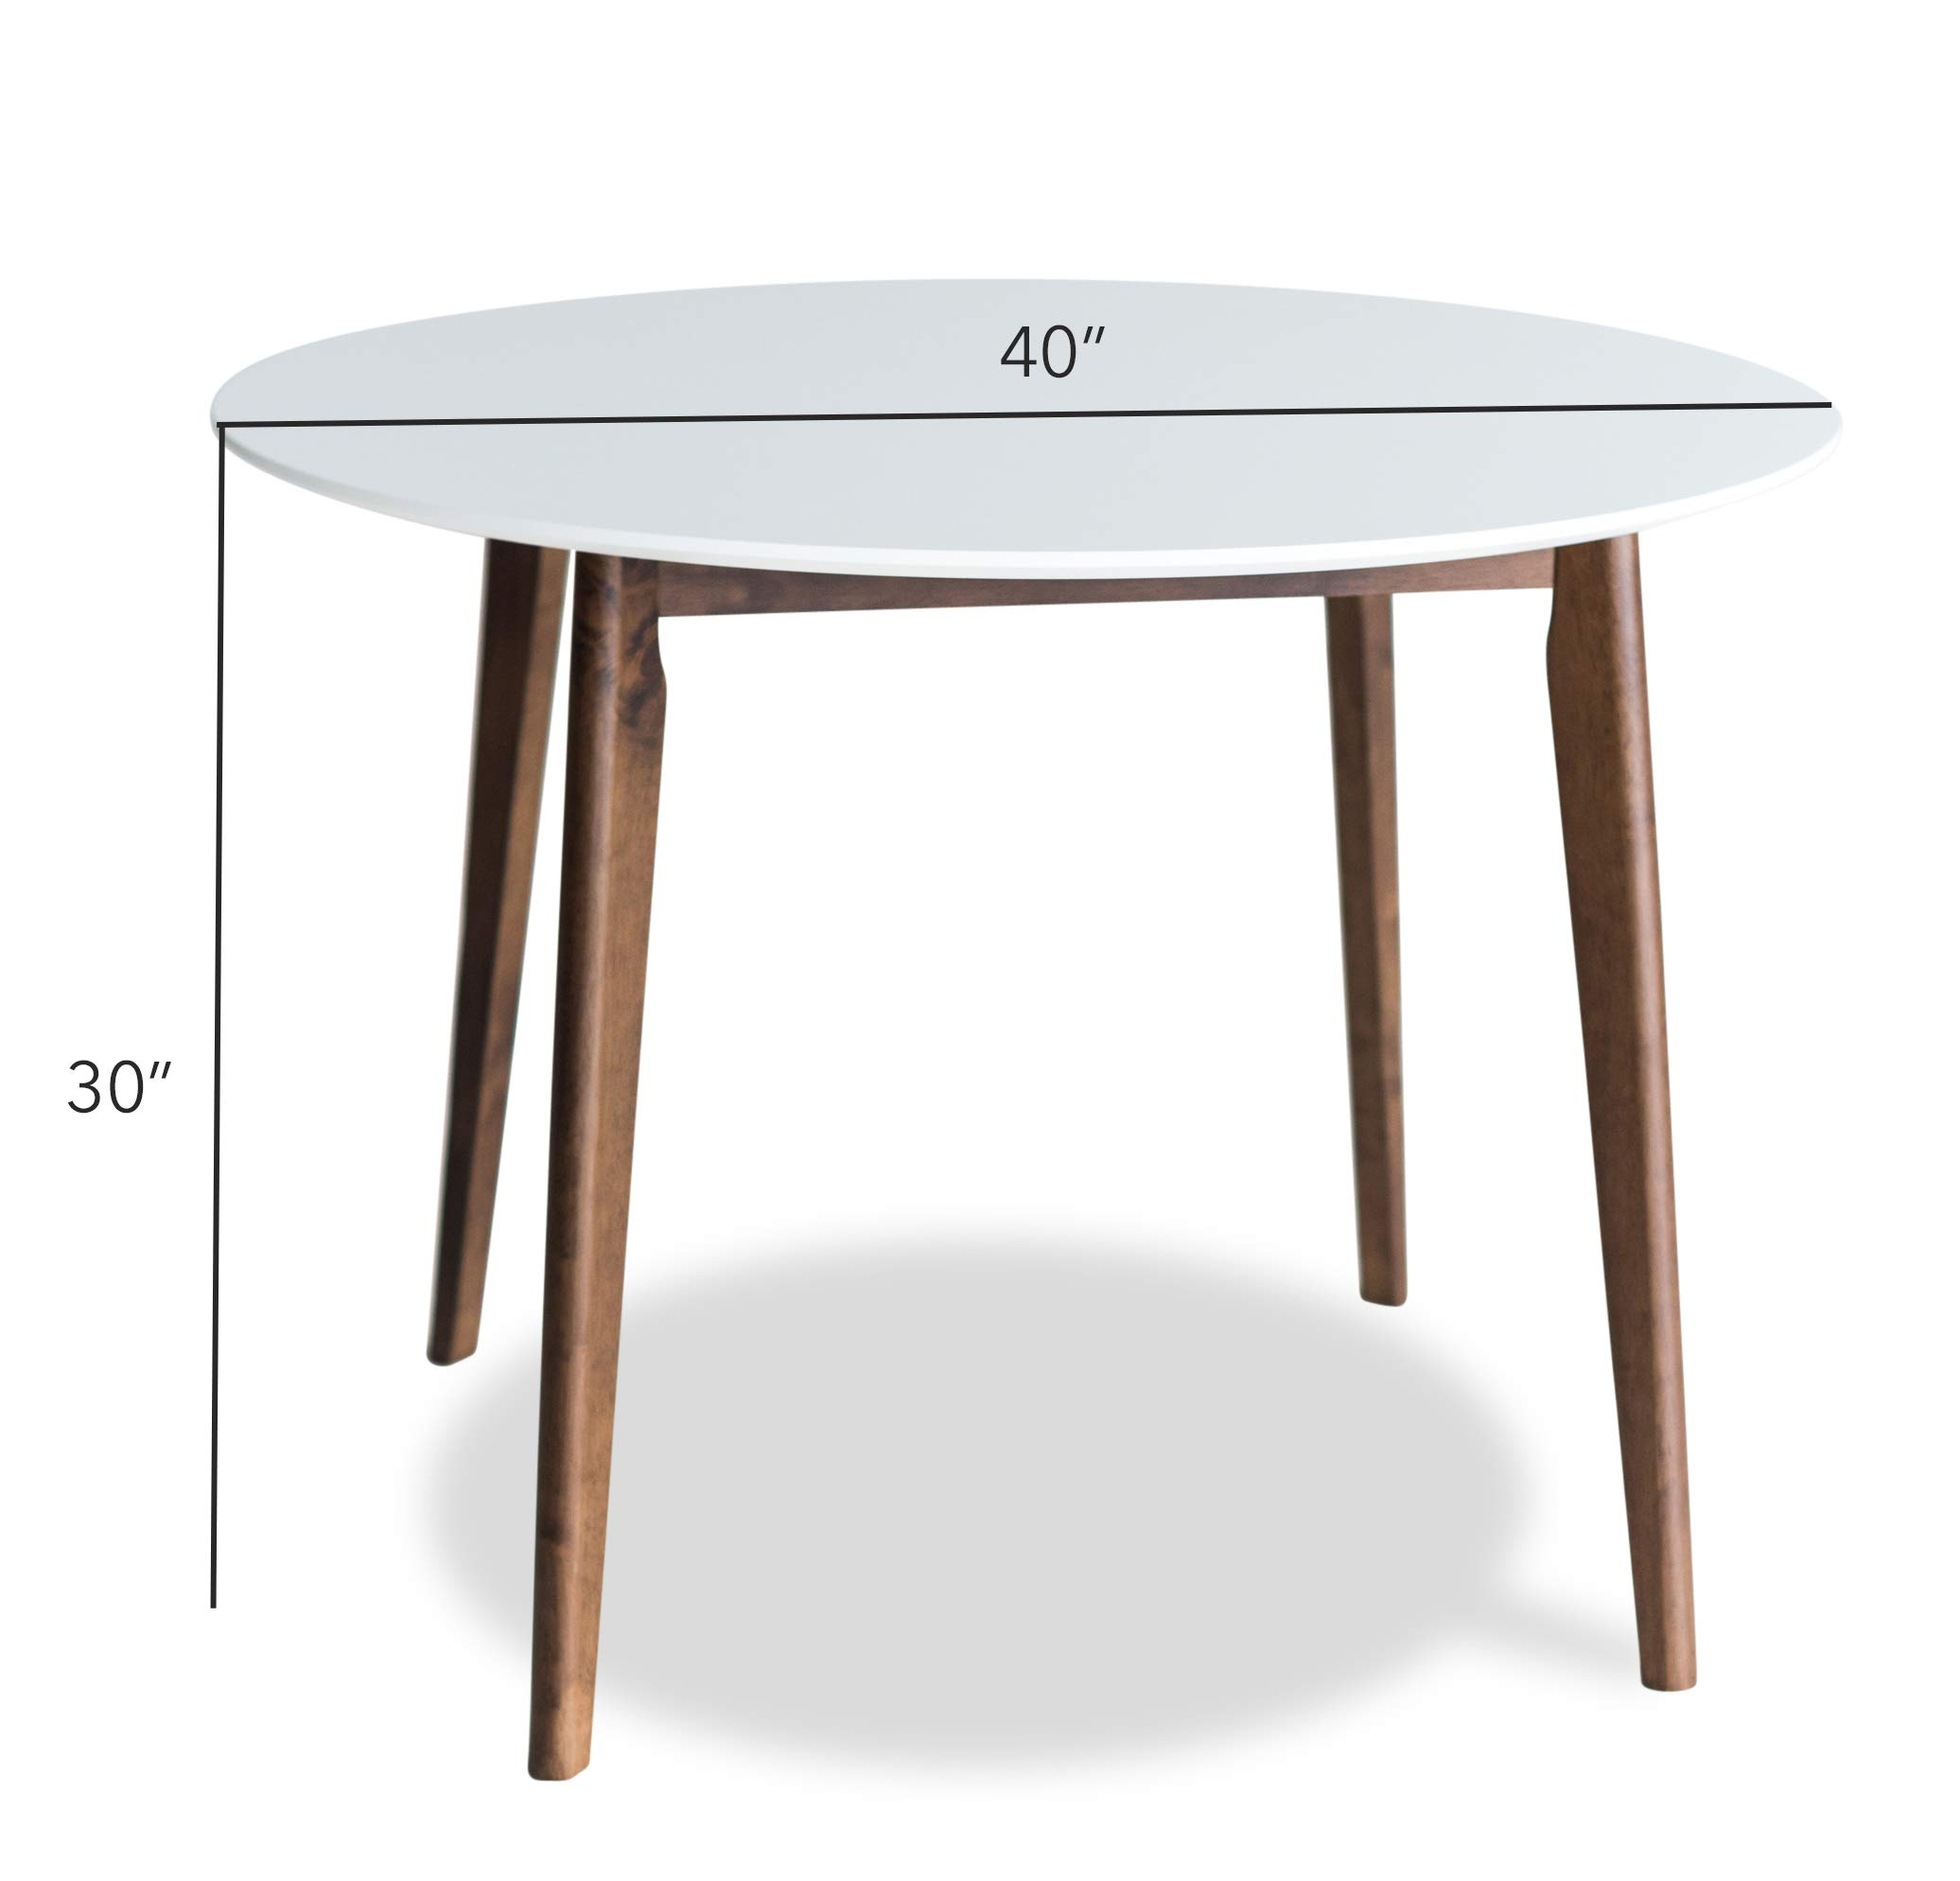 Edloe Finch Dakota Mid-Century Modern 5 Piece Round Dining Table Set for 4, White Top by Edloe Finch (Image #7)